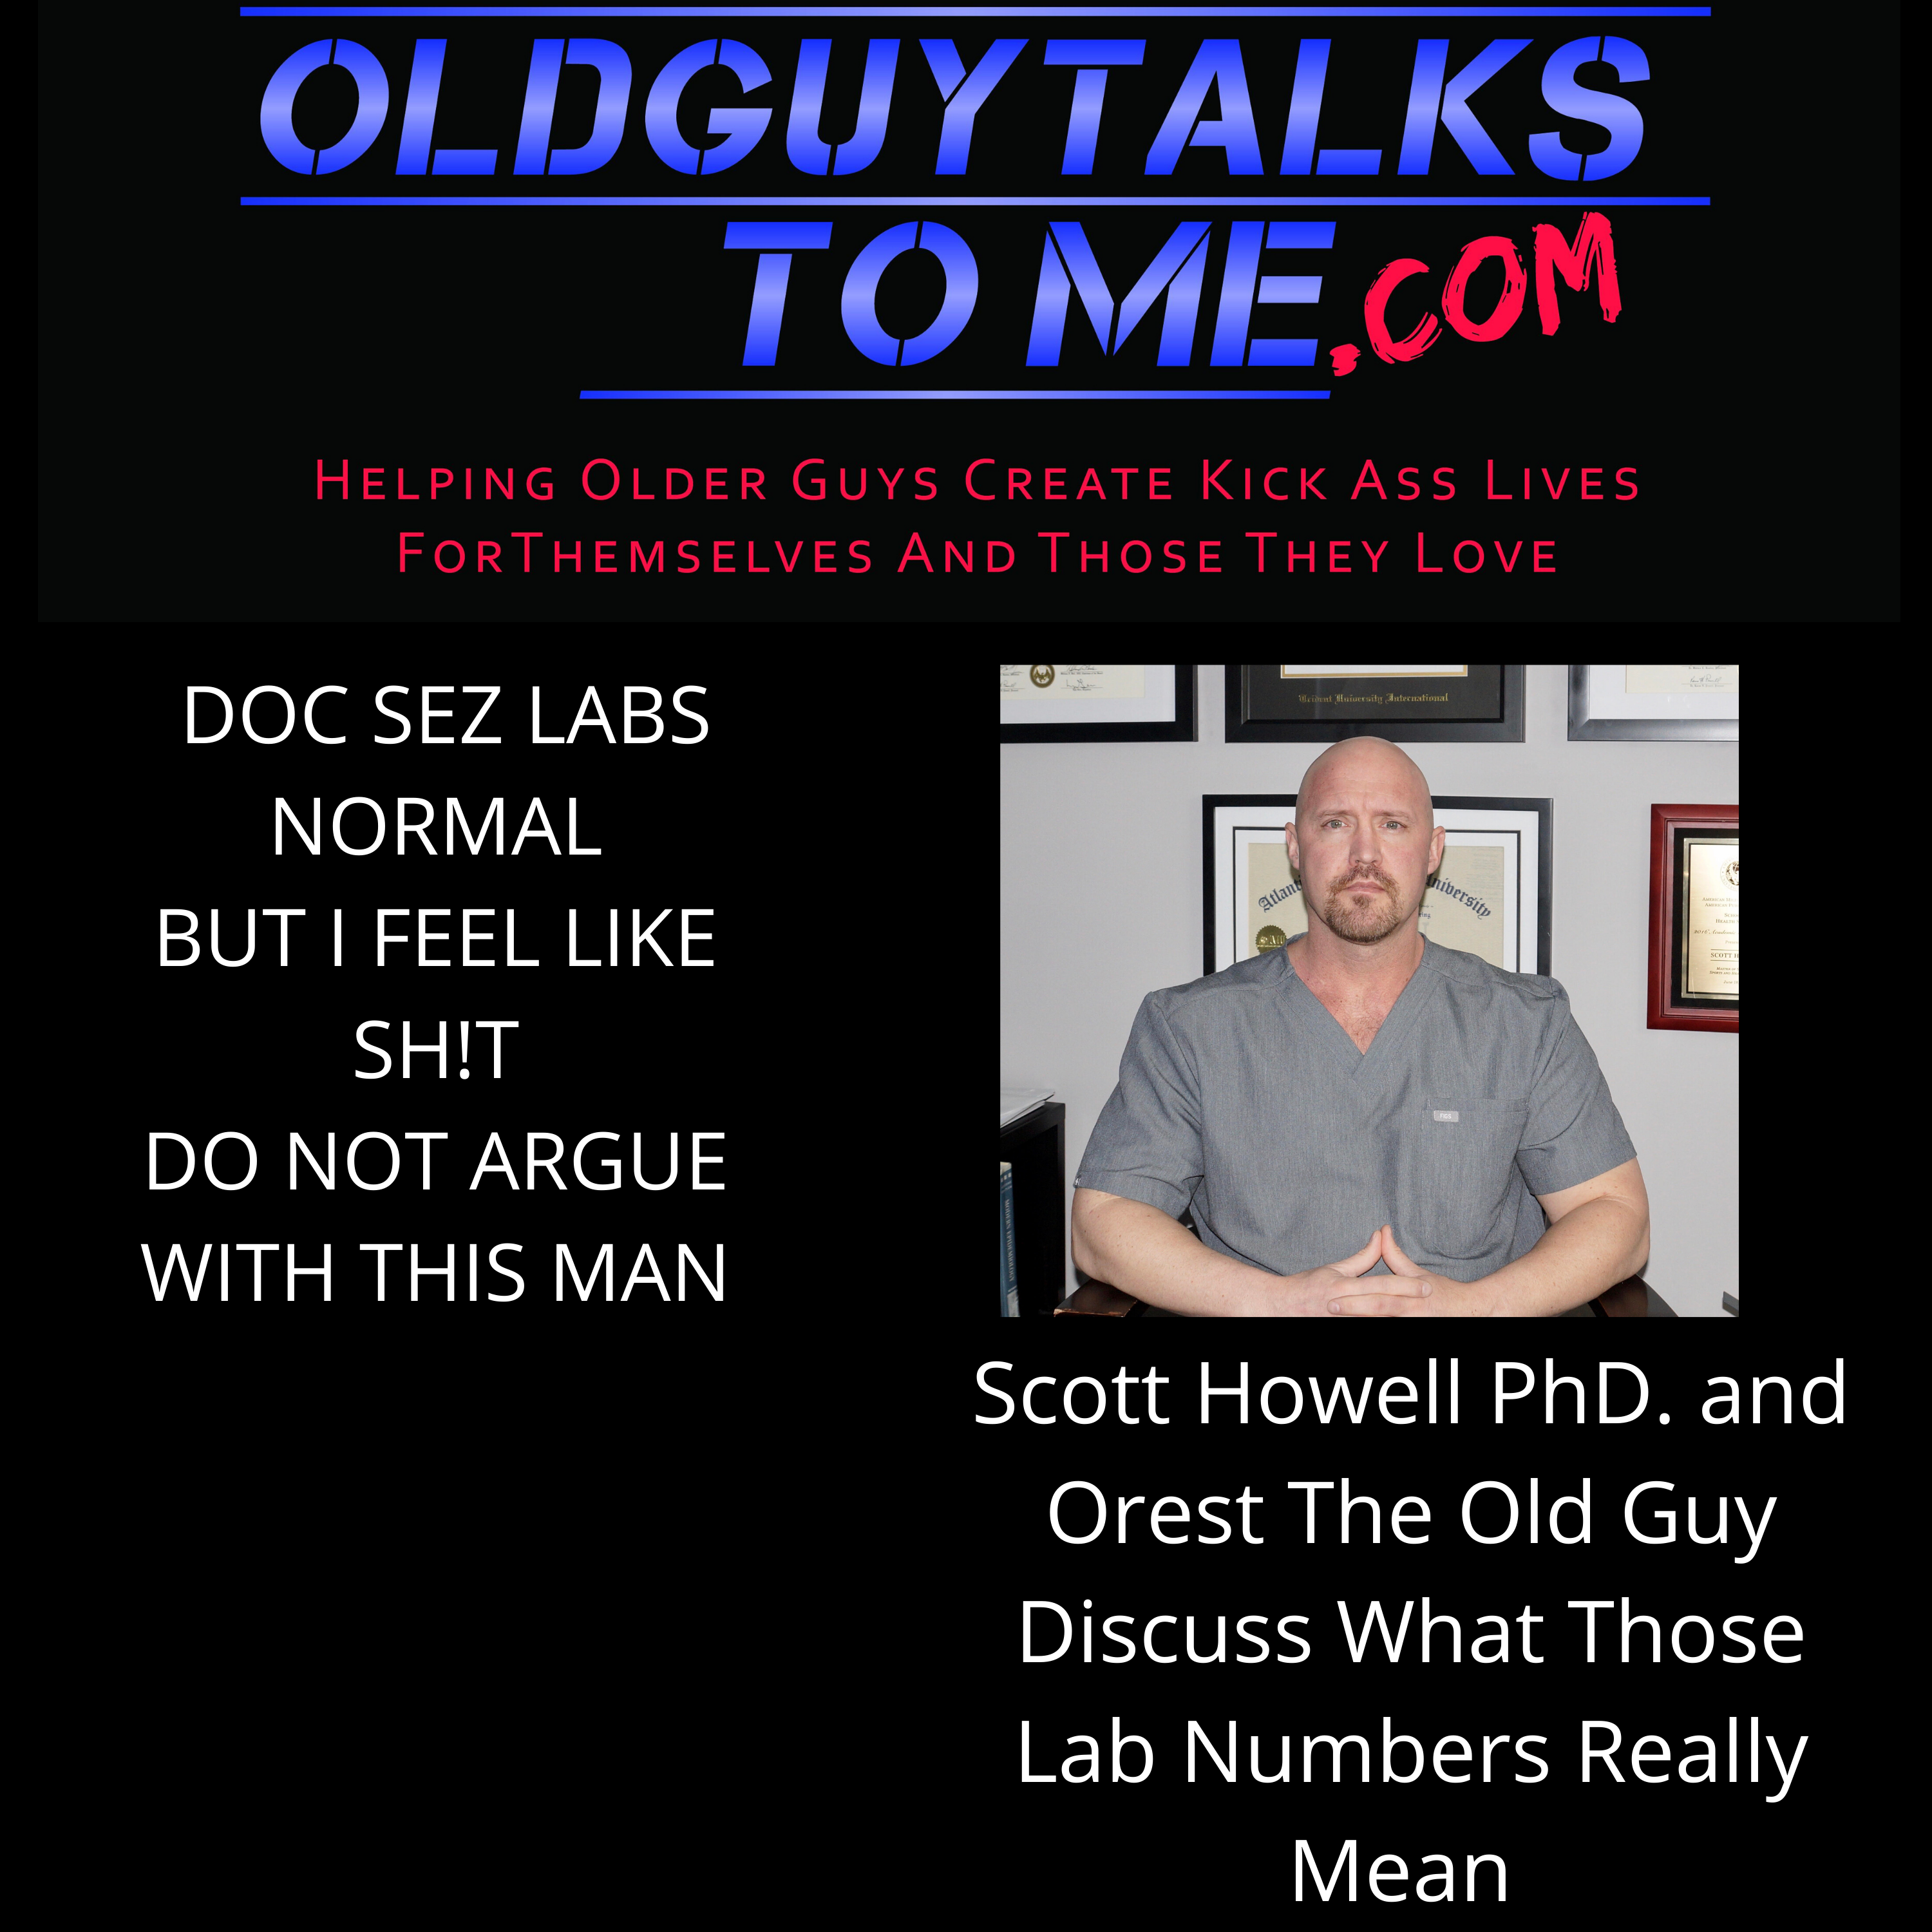 OldGuyTalksToMe - DOC SEZ LABS NORMAL BUT I FEEL LIKE SH!T